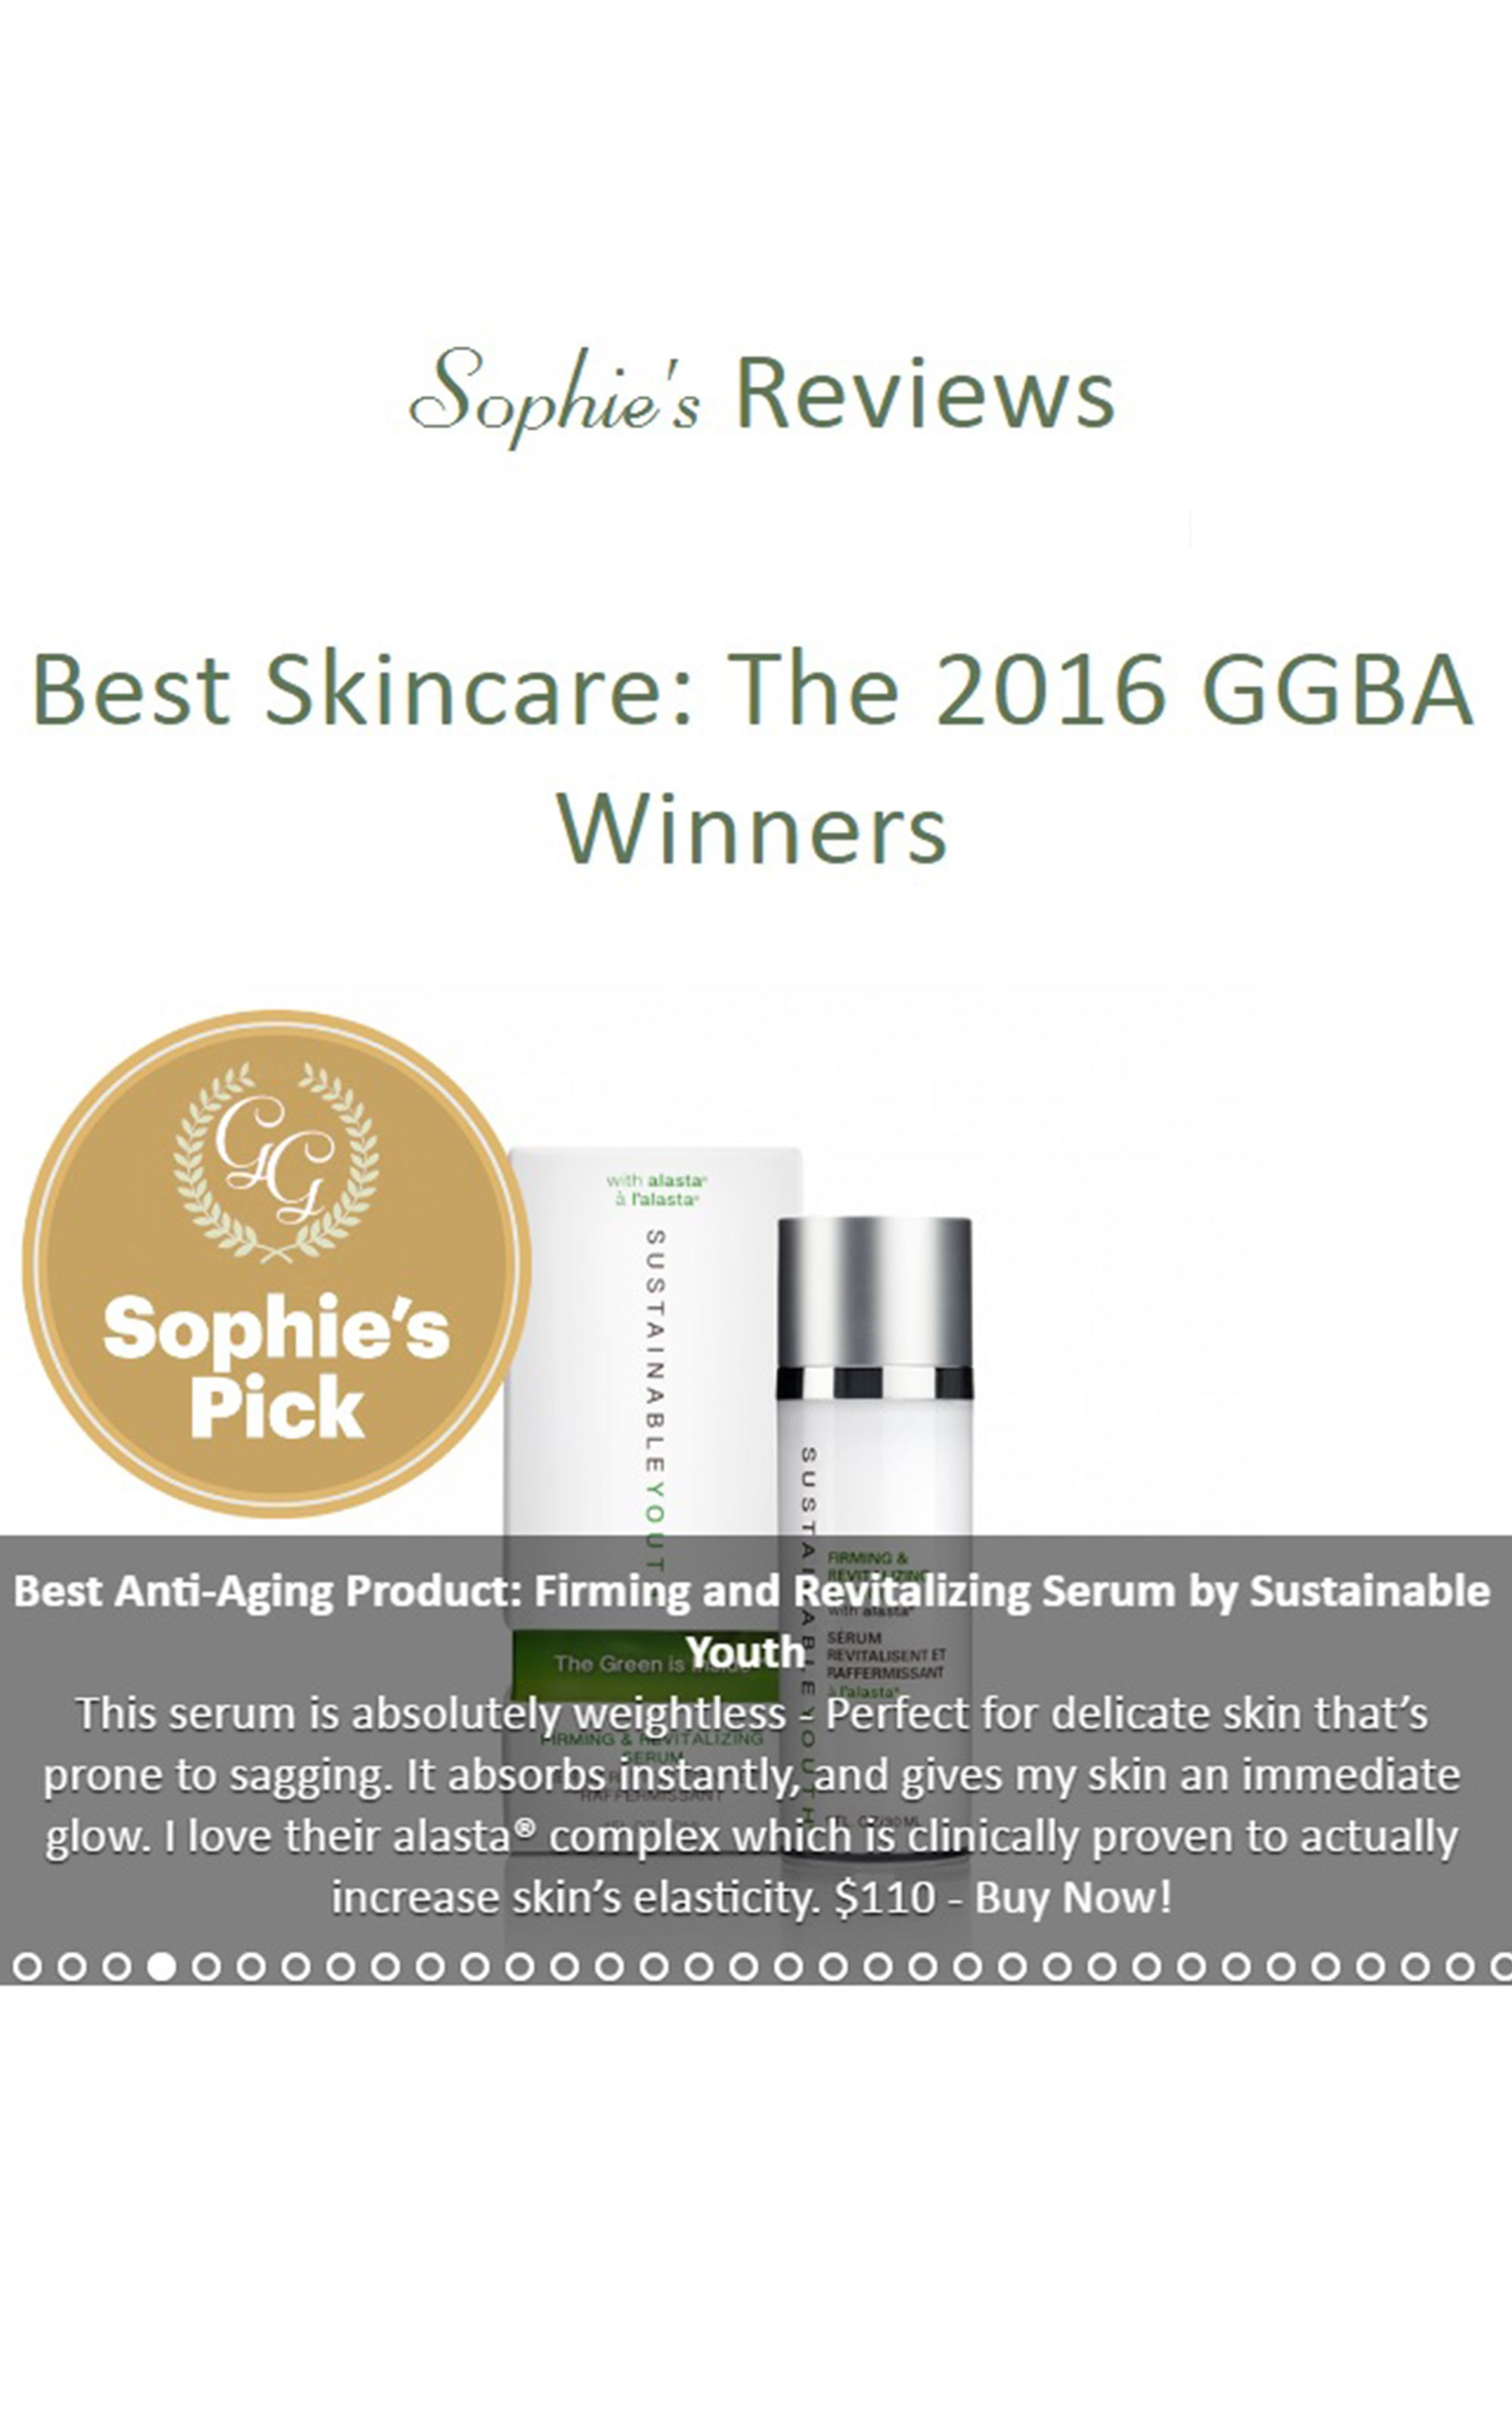 Sustainable Youth Firming & Revitalizing Serum featured on SophieUliano.com Sophie's Reviews: Best Skincare, The 2016 GBBA Winners